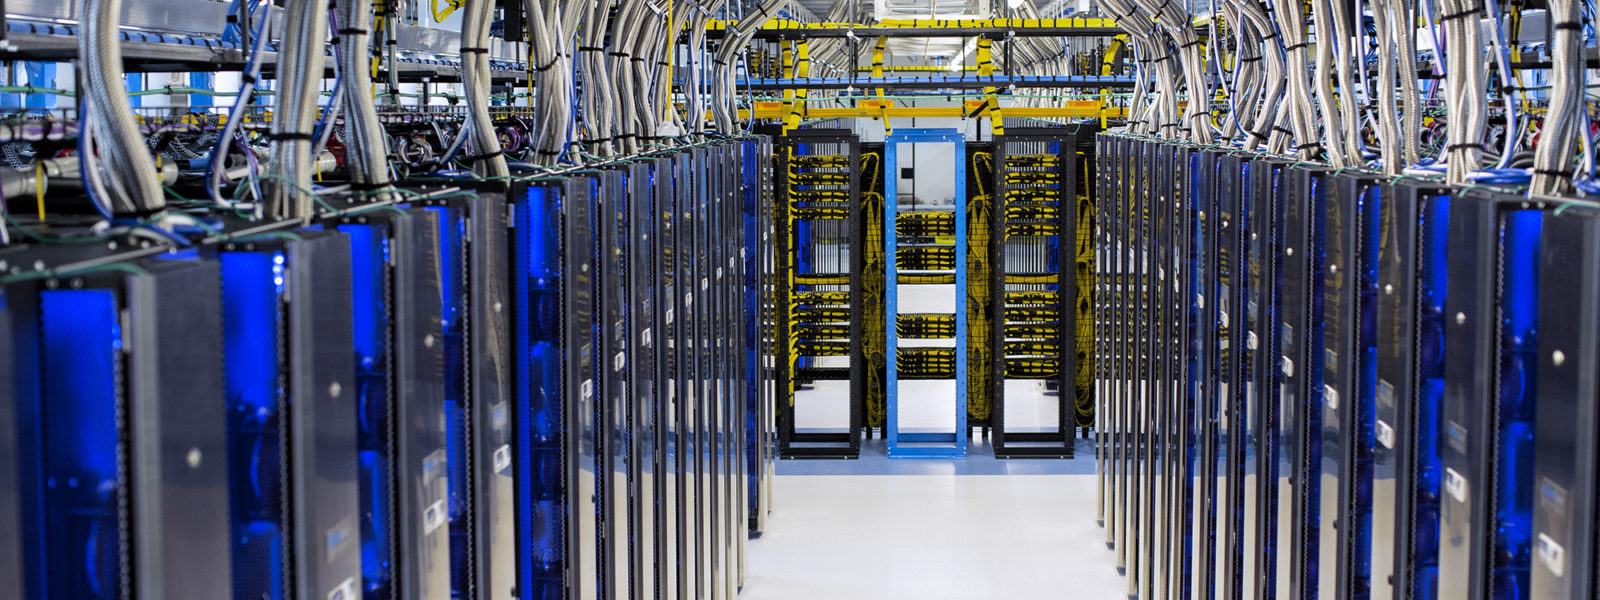 Real people. IT professionals build and maintain the LinkedIn server farm which operates on 100% renewable energy.